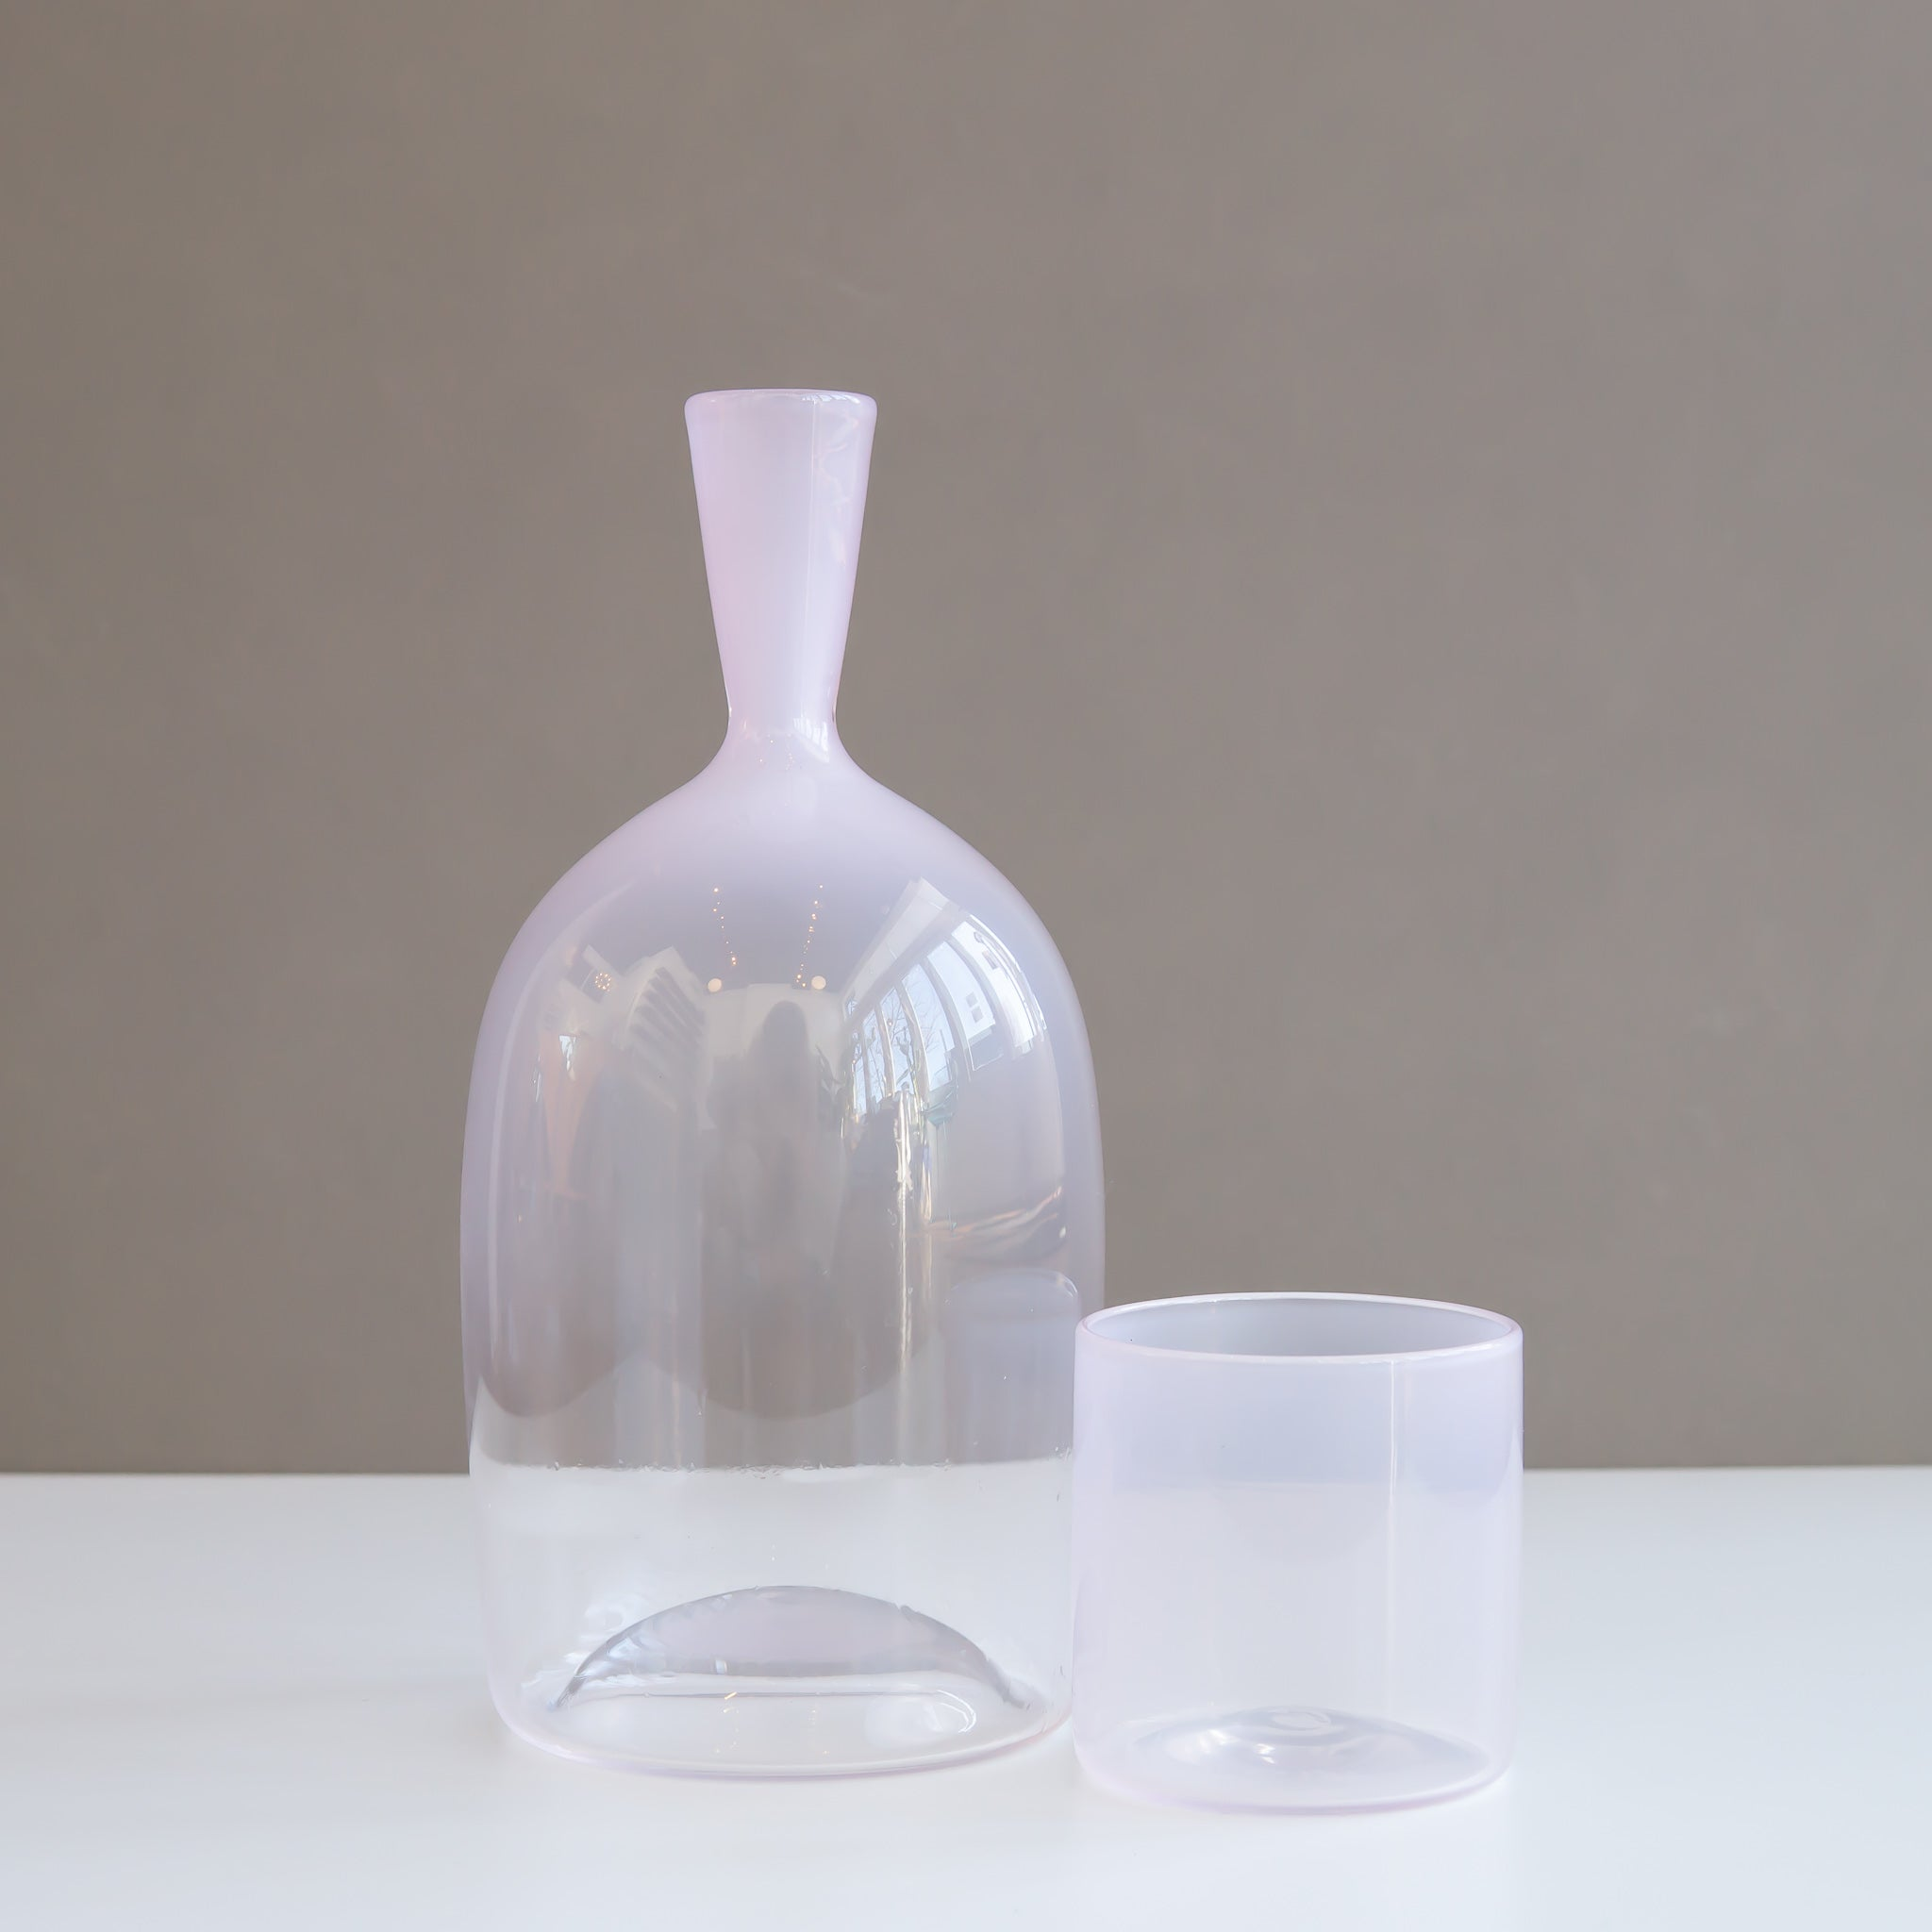 Matthew Abadi: Decanter Set